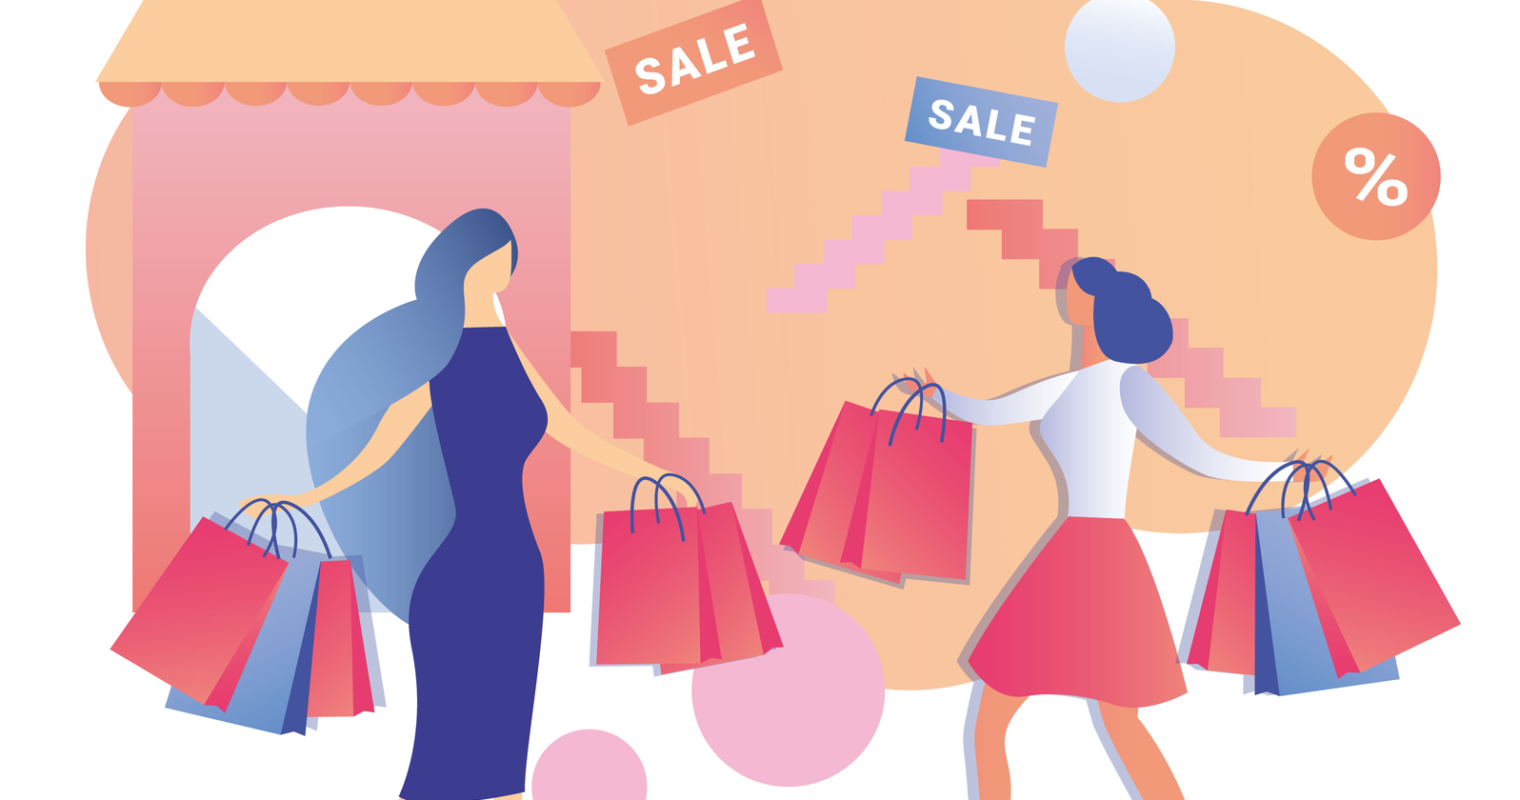 Google's Smart Shopping Campaigns Can Be Optimized for In-Store Visits